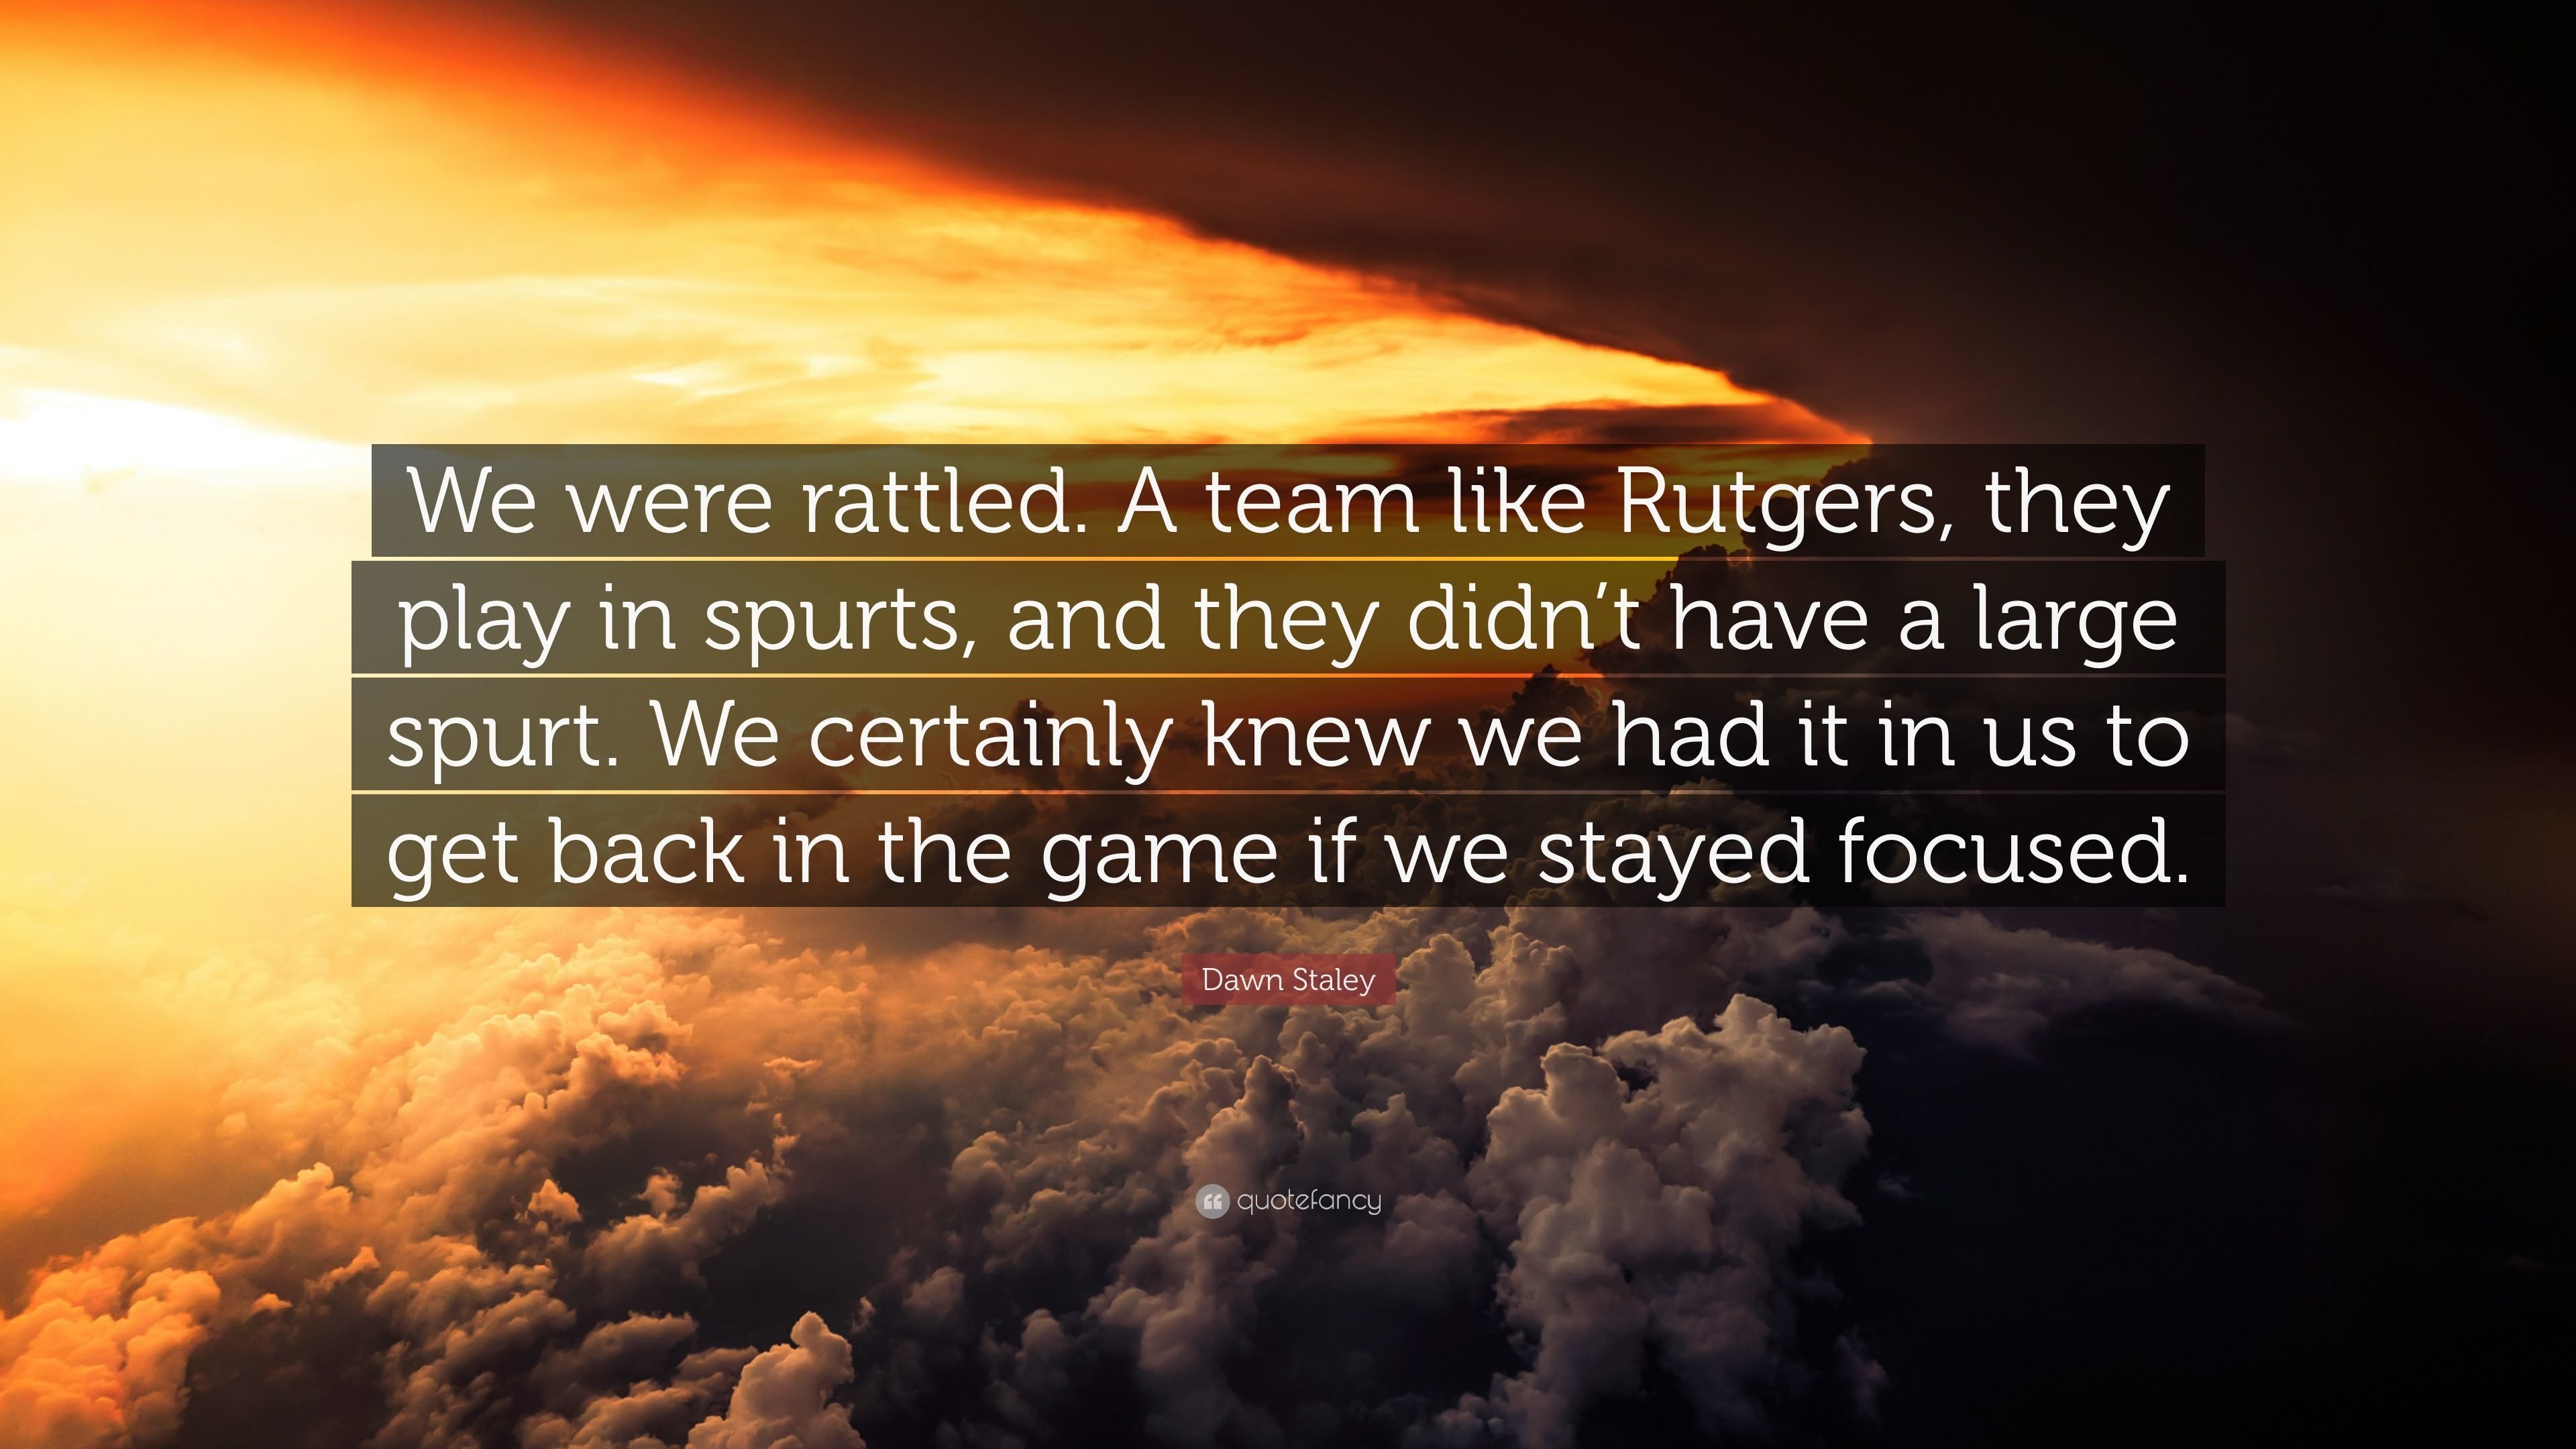 3840x2160 ... Dawn Staley Quote We were rattled A team like Rutgers they play